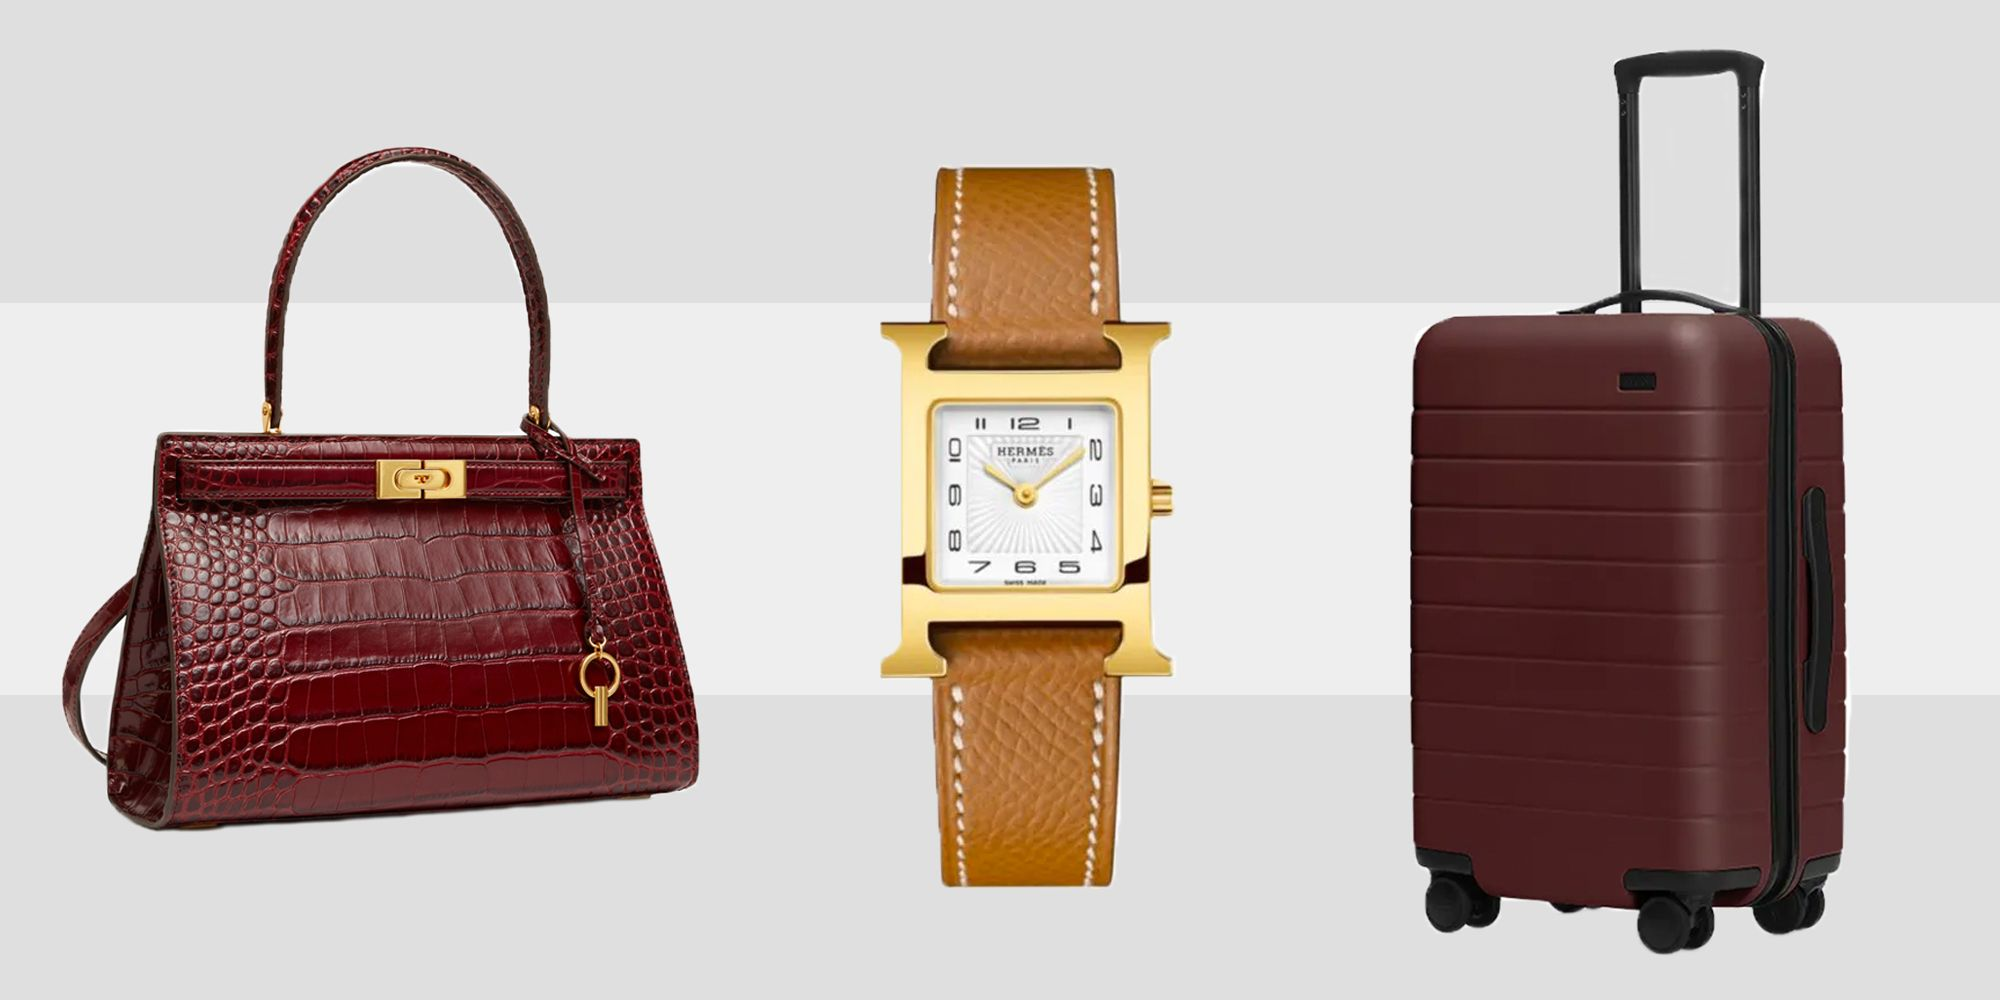 Unusual birthday gifts wealthy rich mature adults